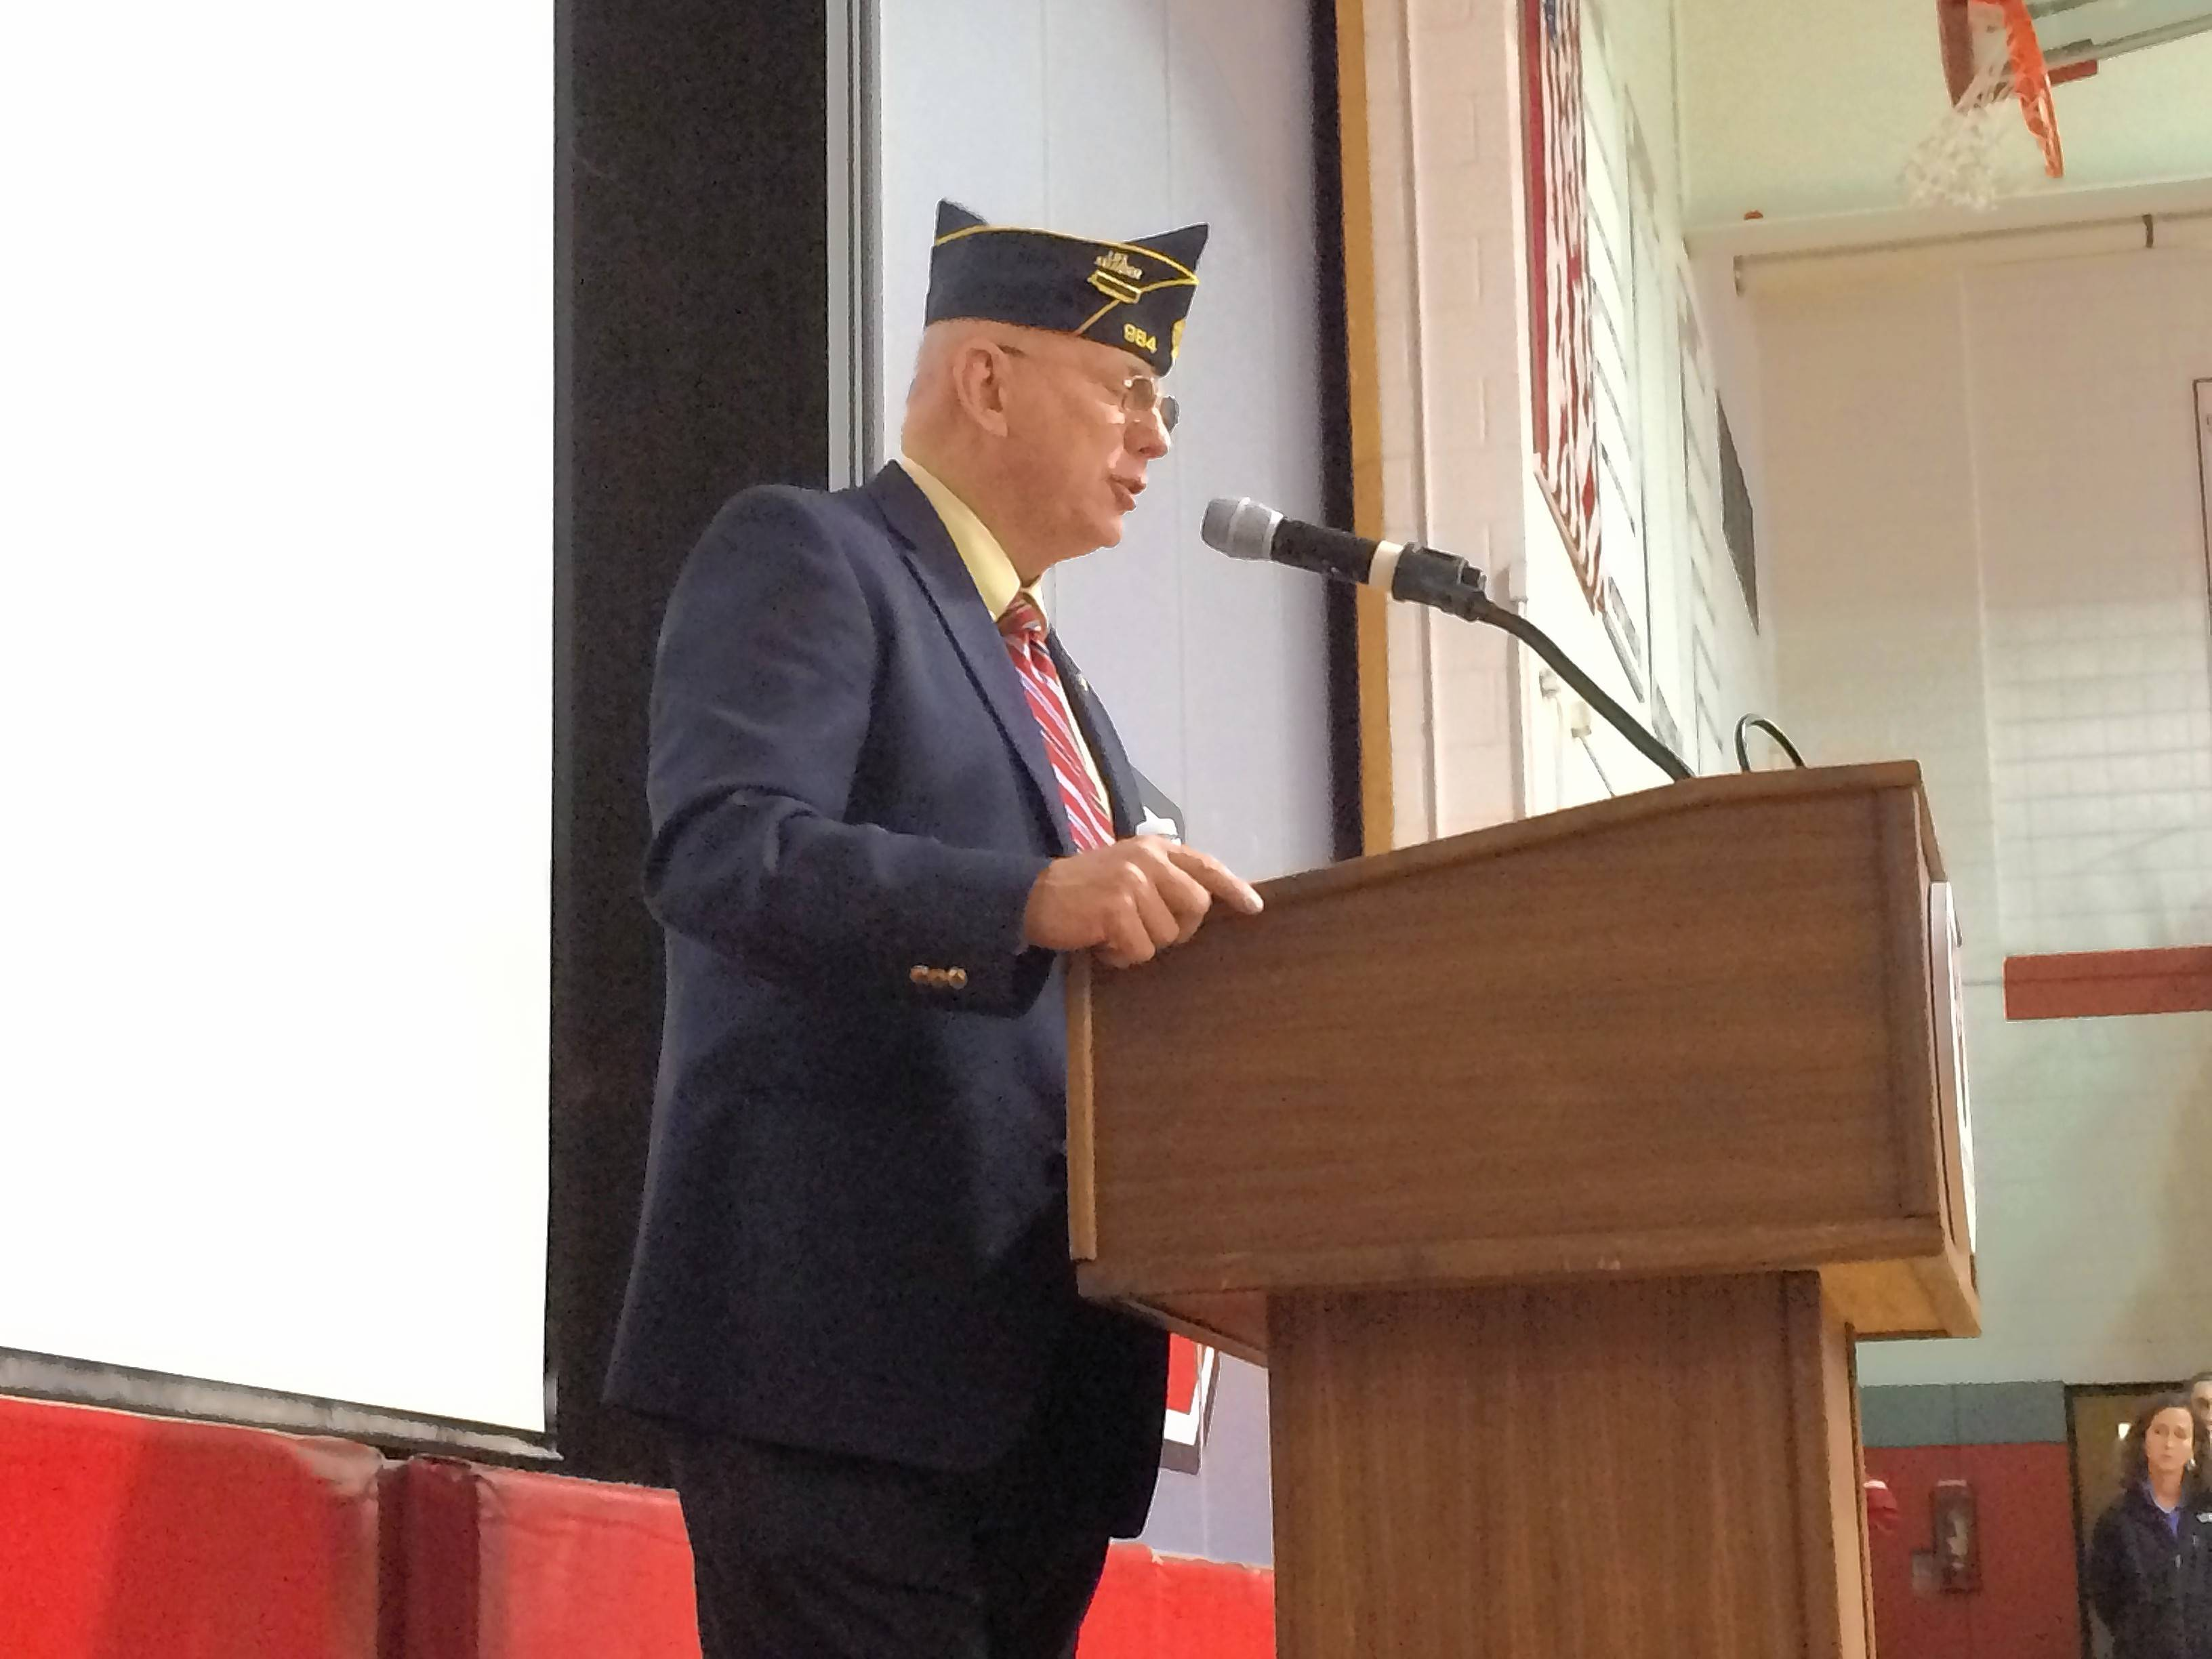 Retired U.S Army Col. Michael Peck talks about military history Friday during a ceremony honoring veterans at Mundelein High School.